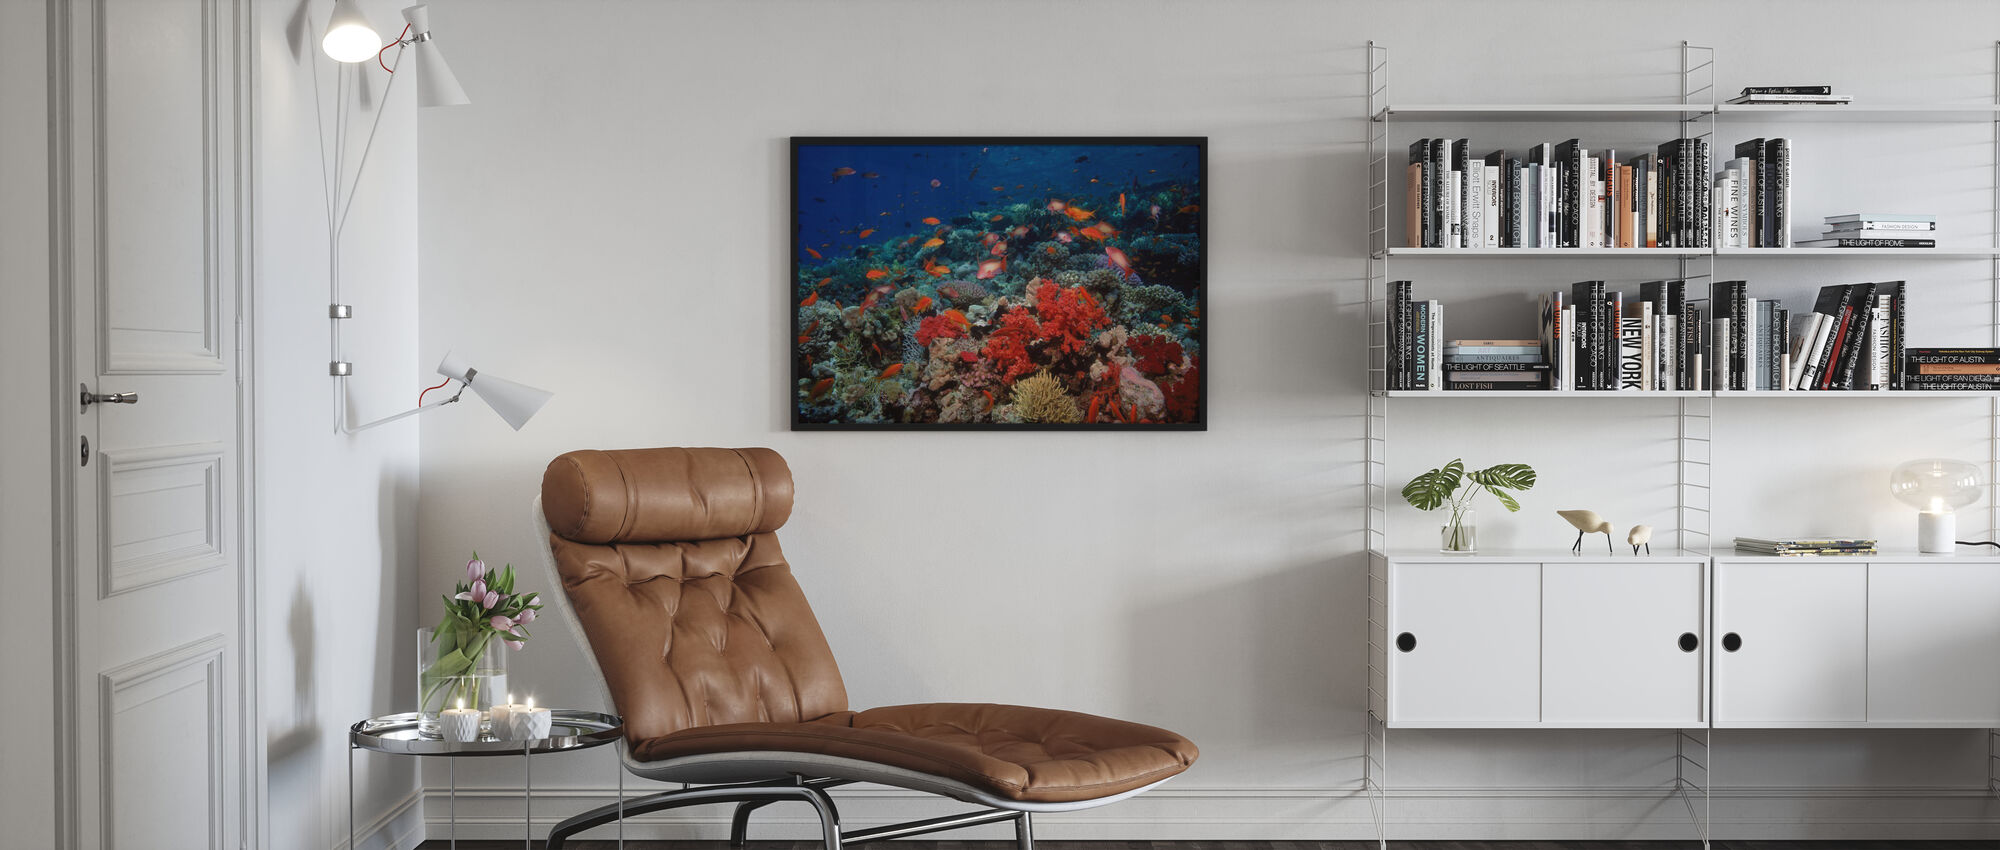 Red Sea - Poster - Living Room